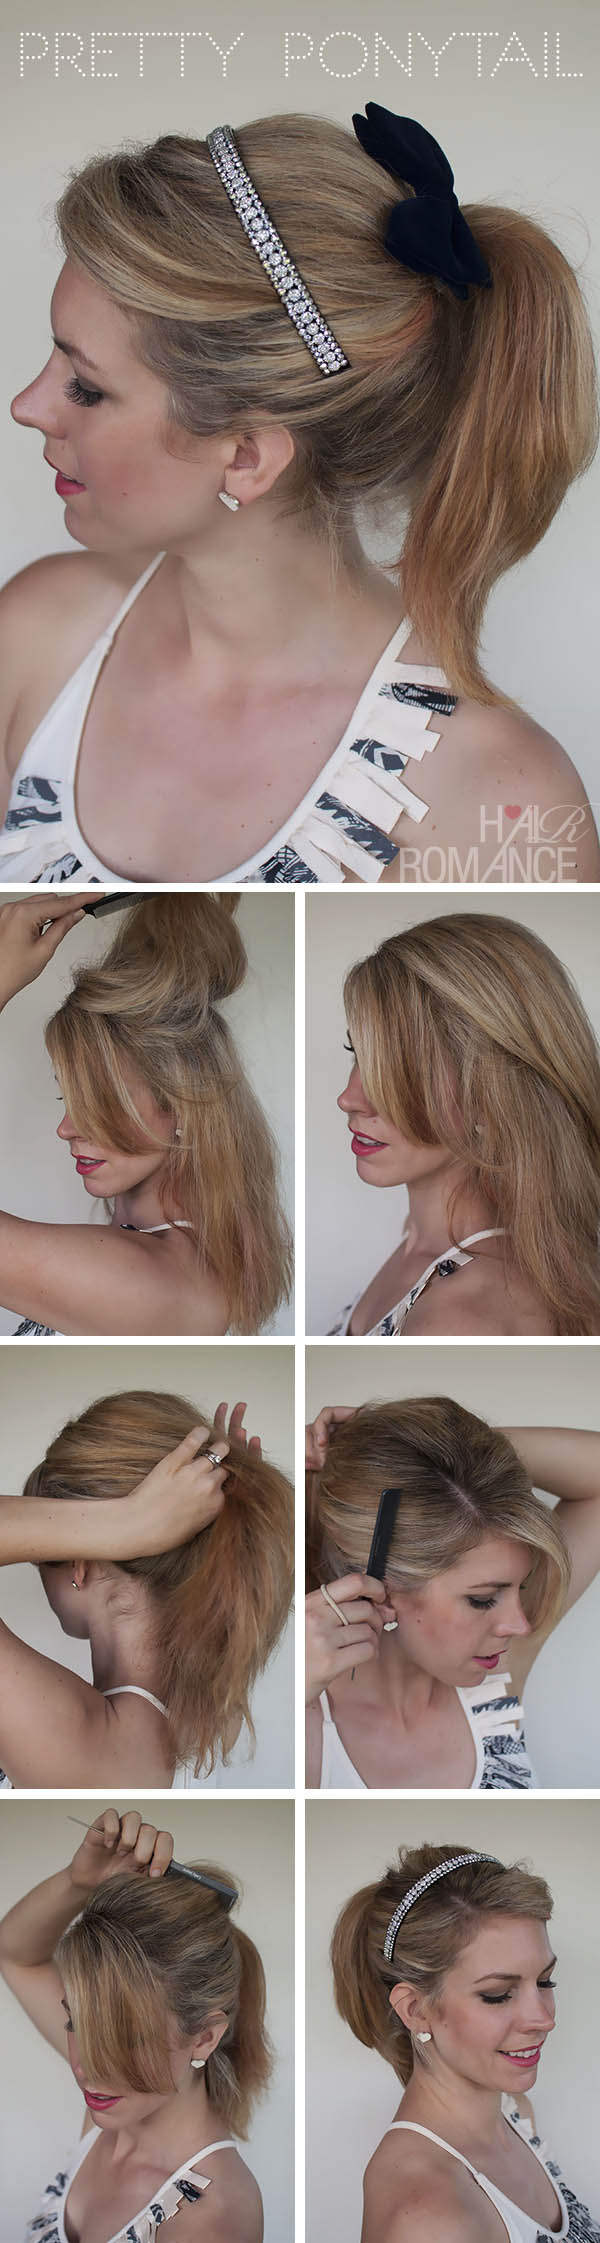 Pretty Ponytail Tutorial by Hair Romance